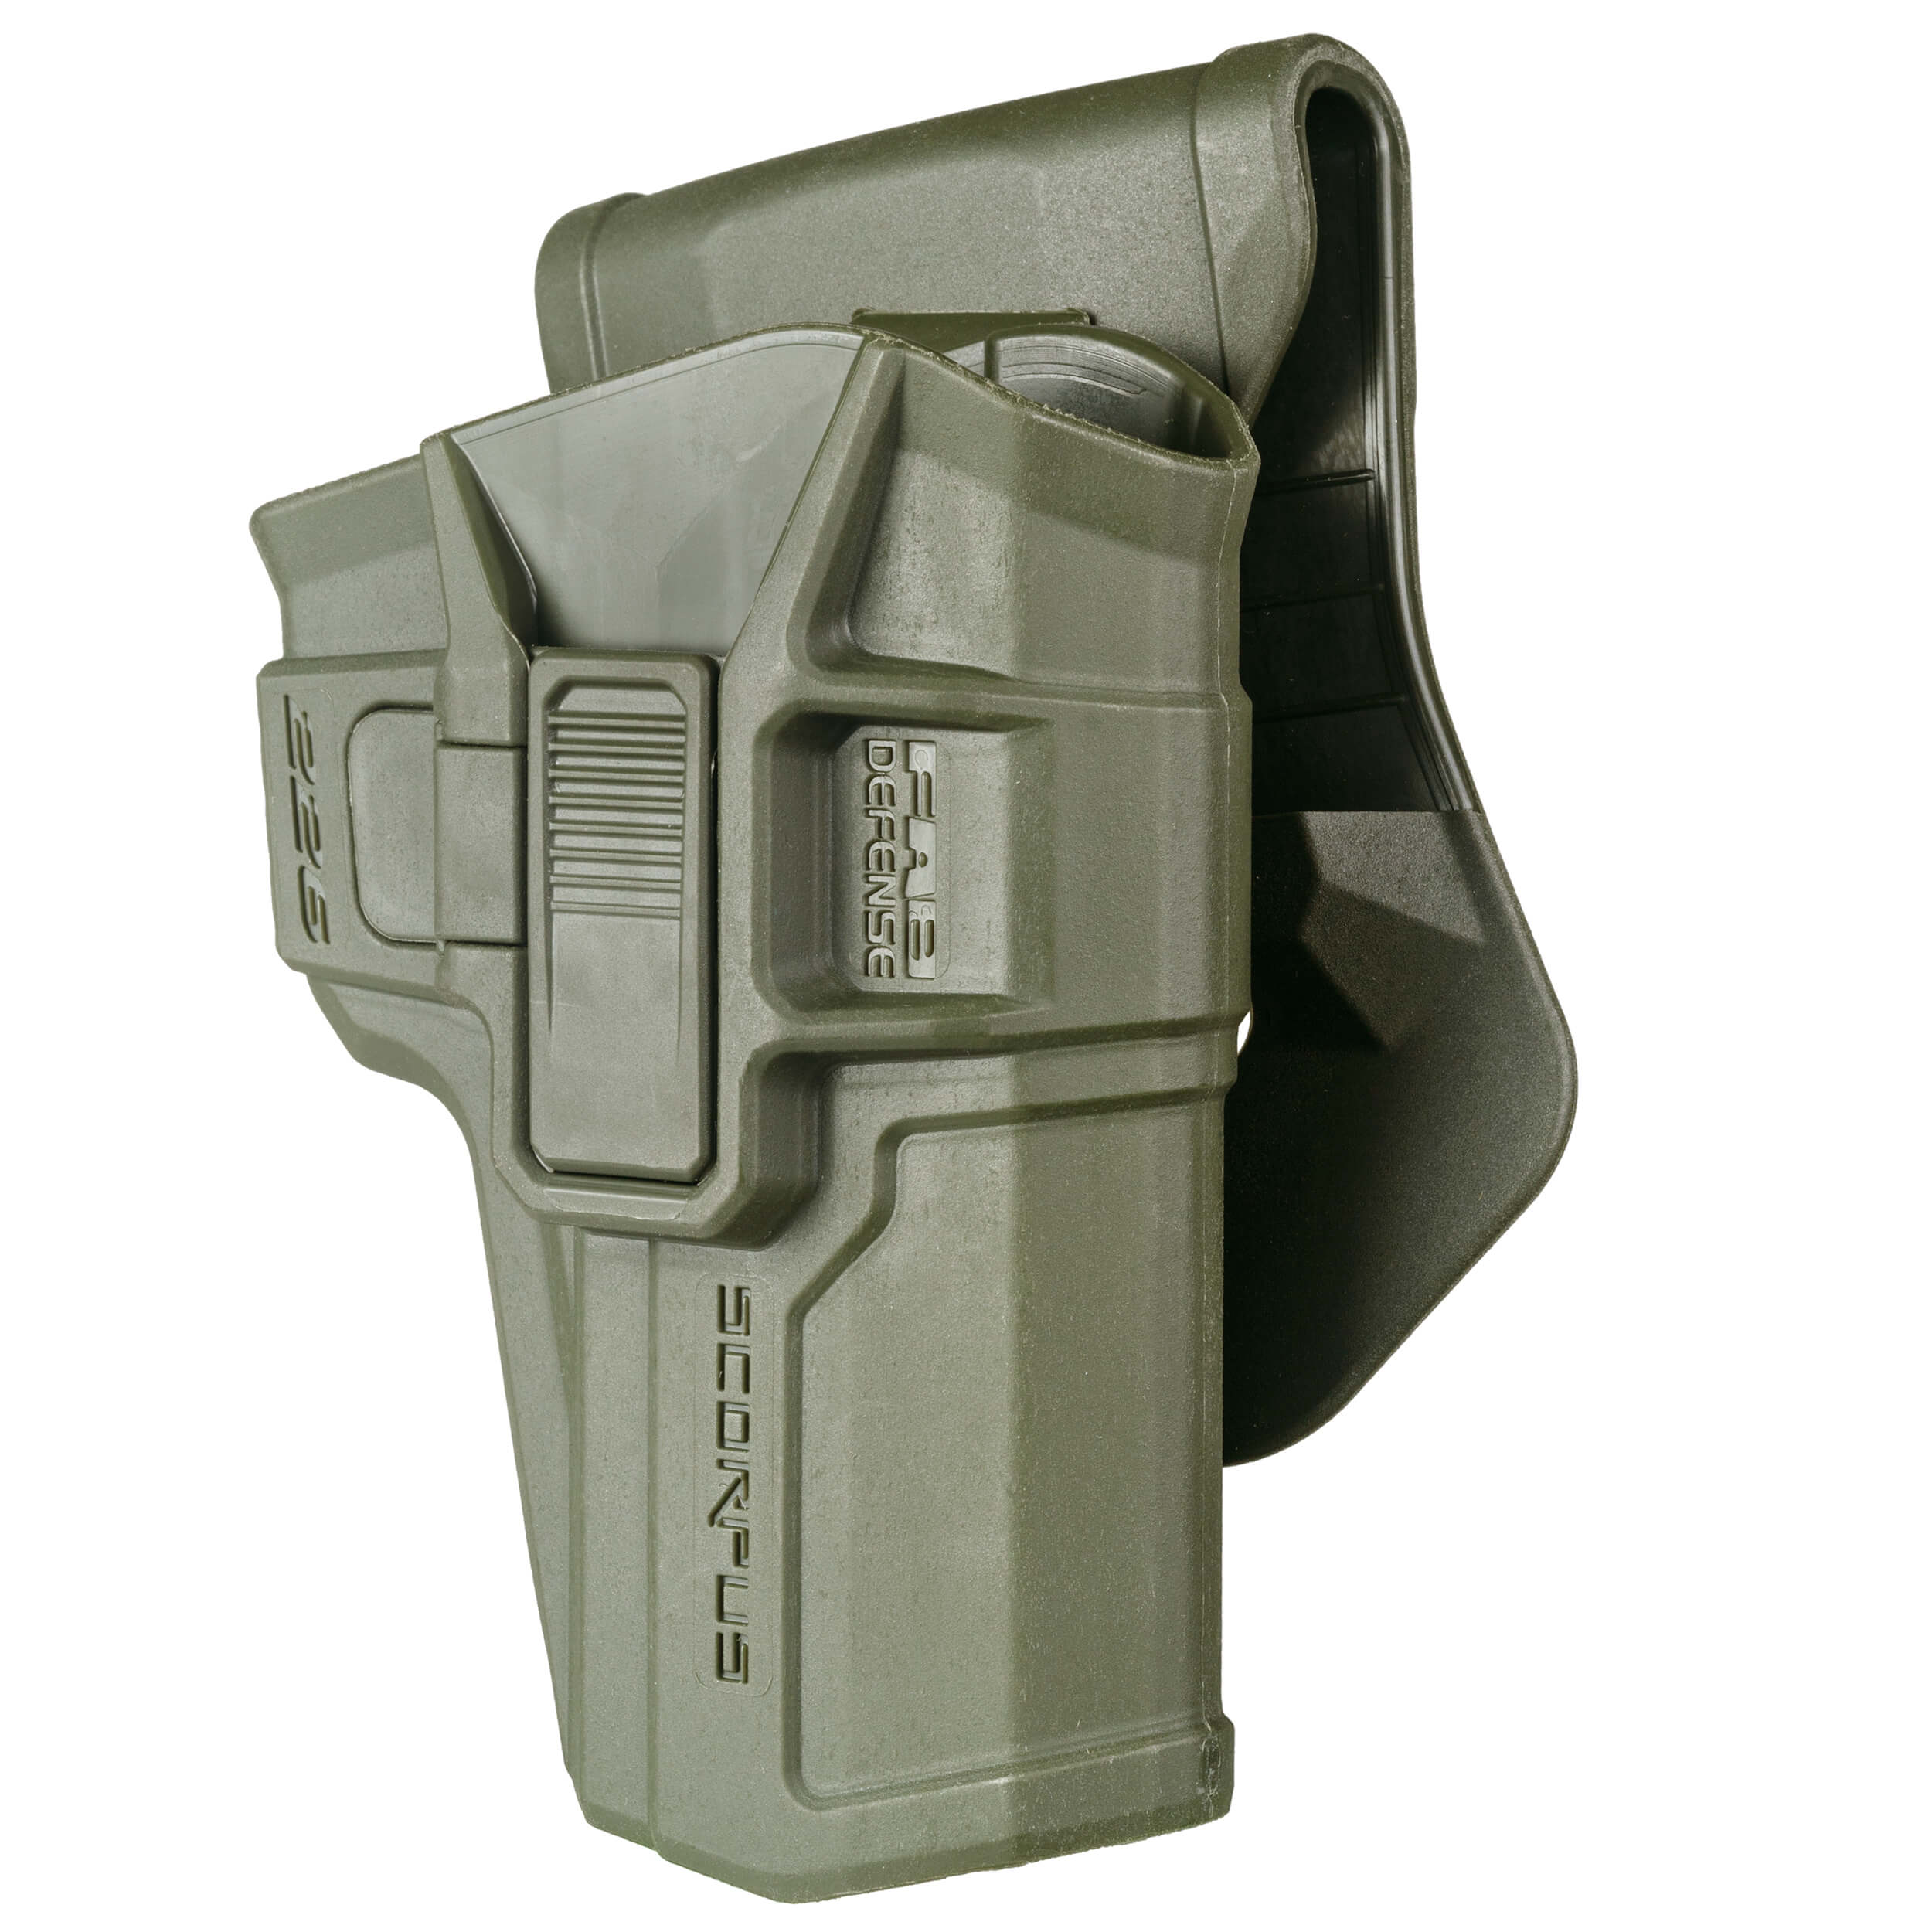 SIG Sauer P226 R ( Level 2 ) M1 Holster (Paddle+Belt)